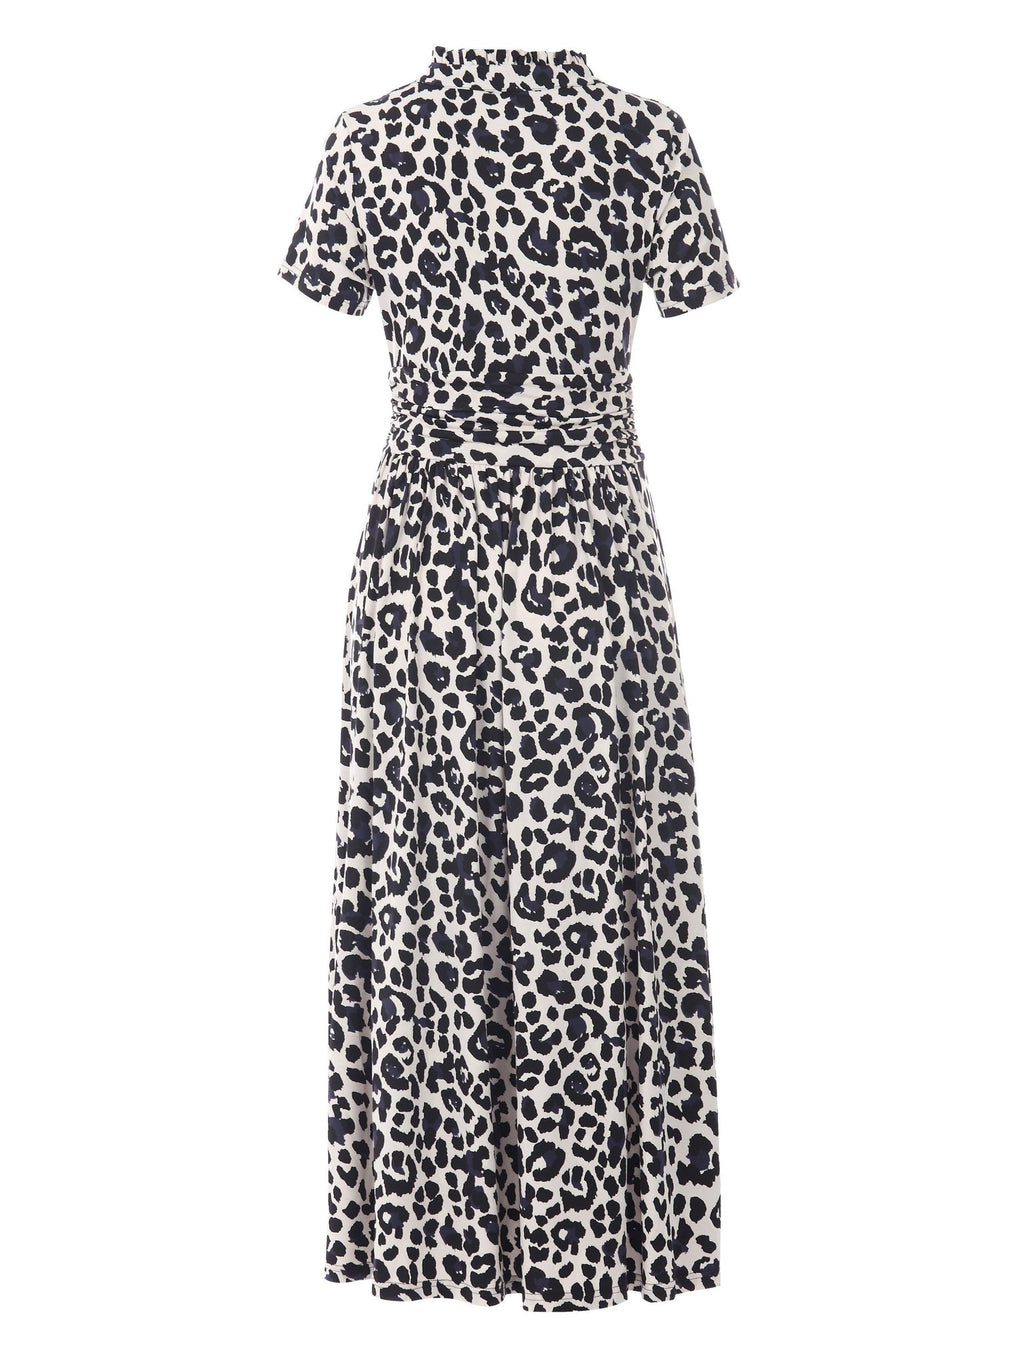 Retro Leopard Dress - PRE-ORDER